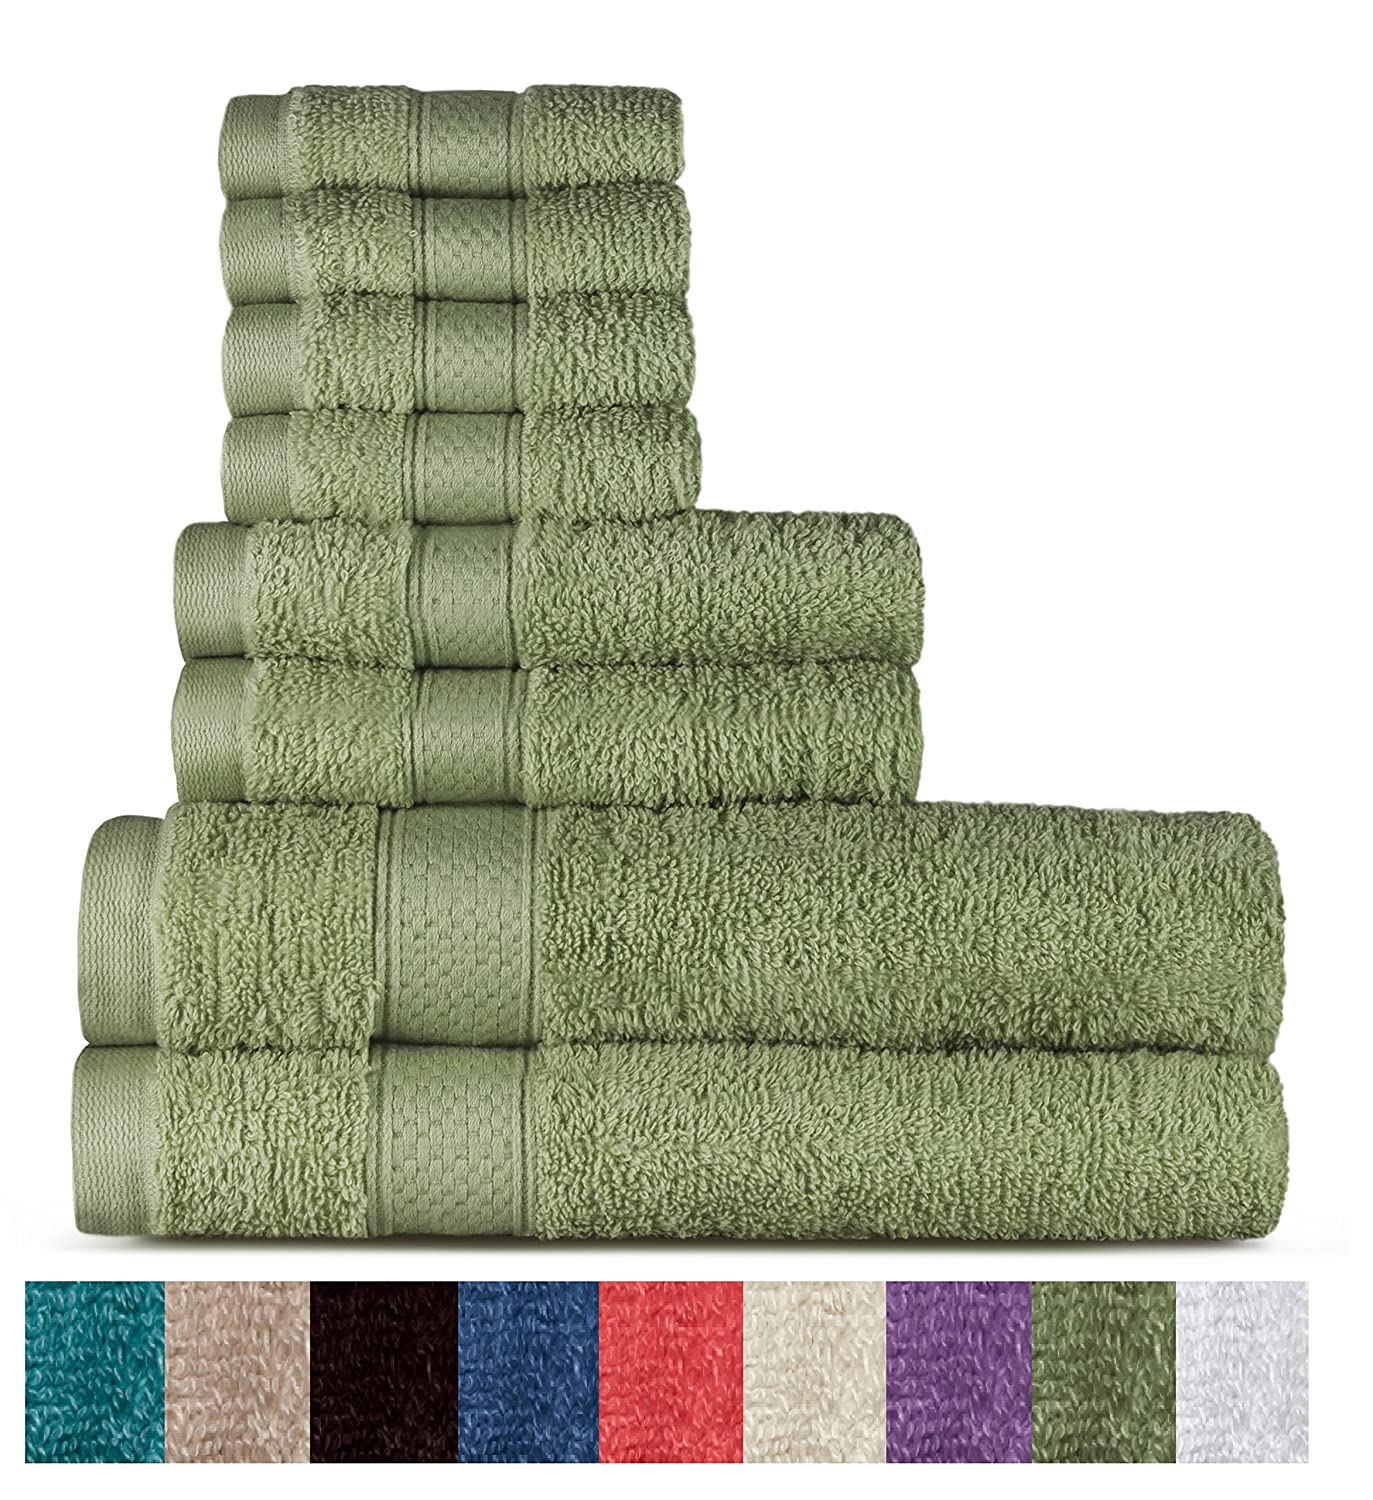 100% Cotton 8 Piece Towel Set (Sage); 2 Bath Towels, 2 Hand Towels and 4 Washcloths, Machine Washable, Super Soft by WELHOME